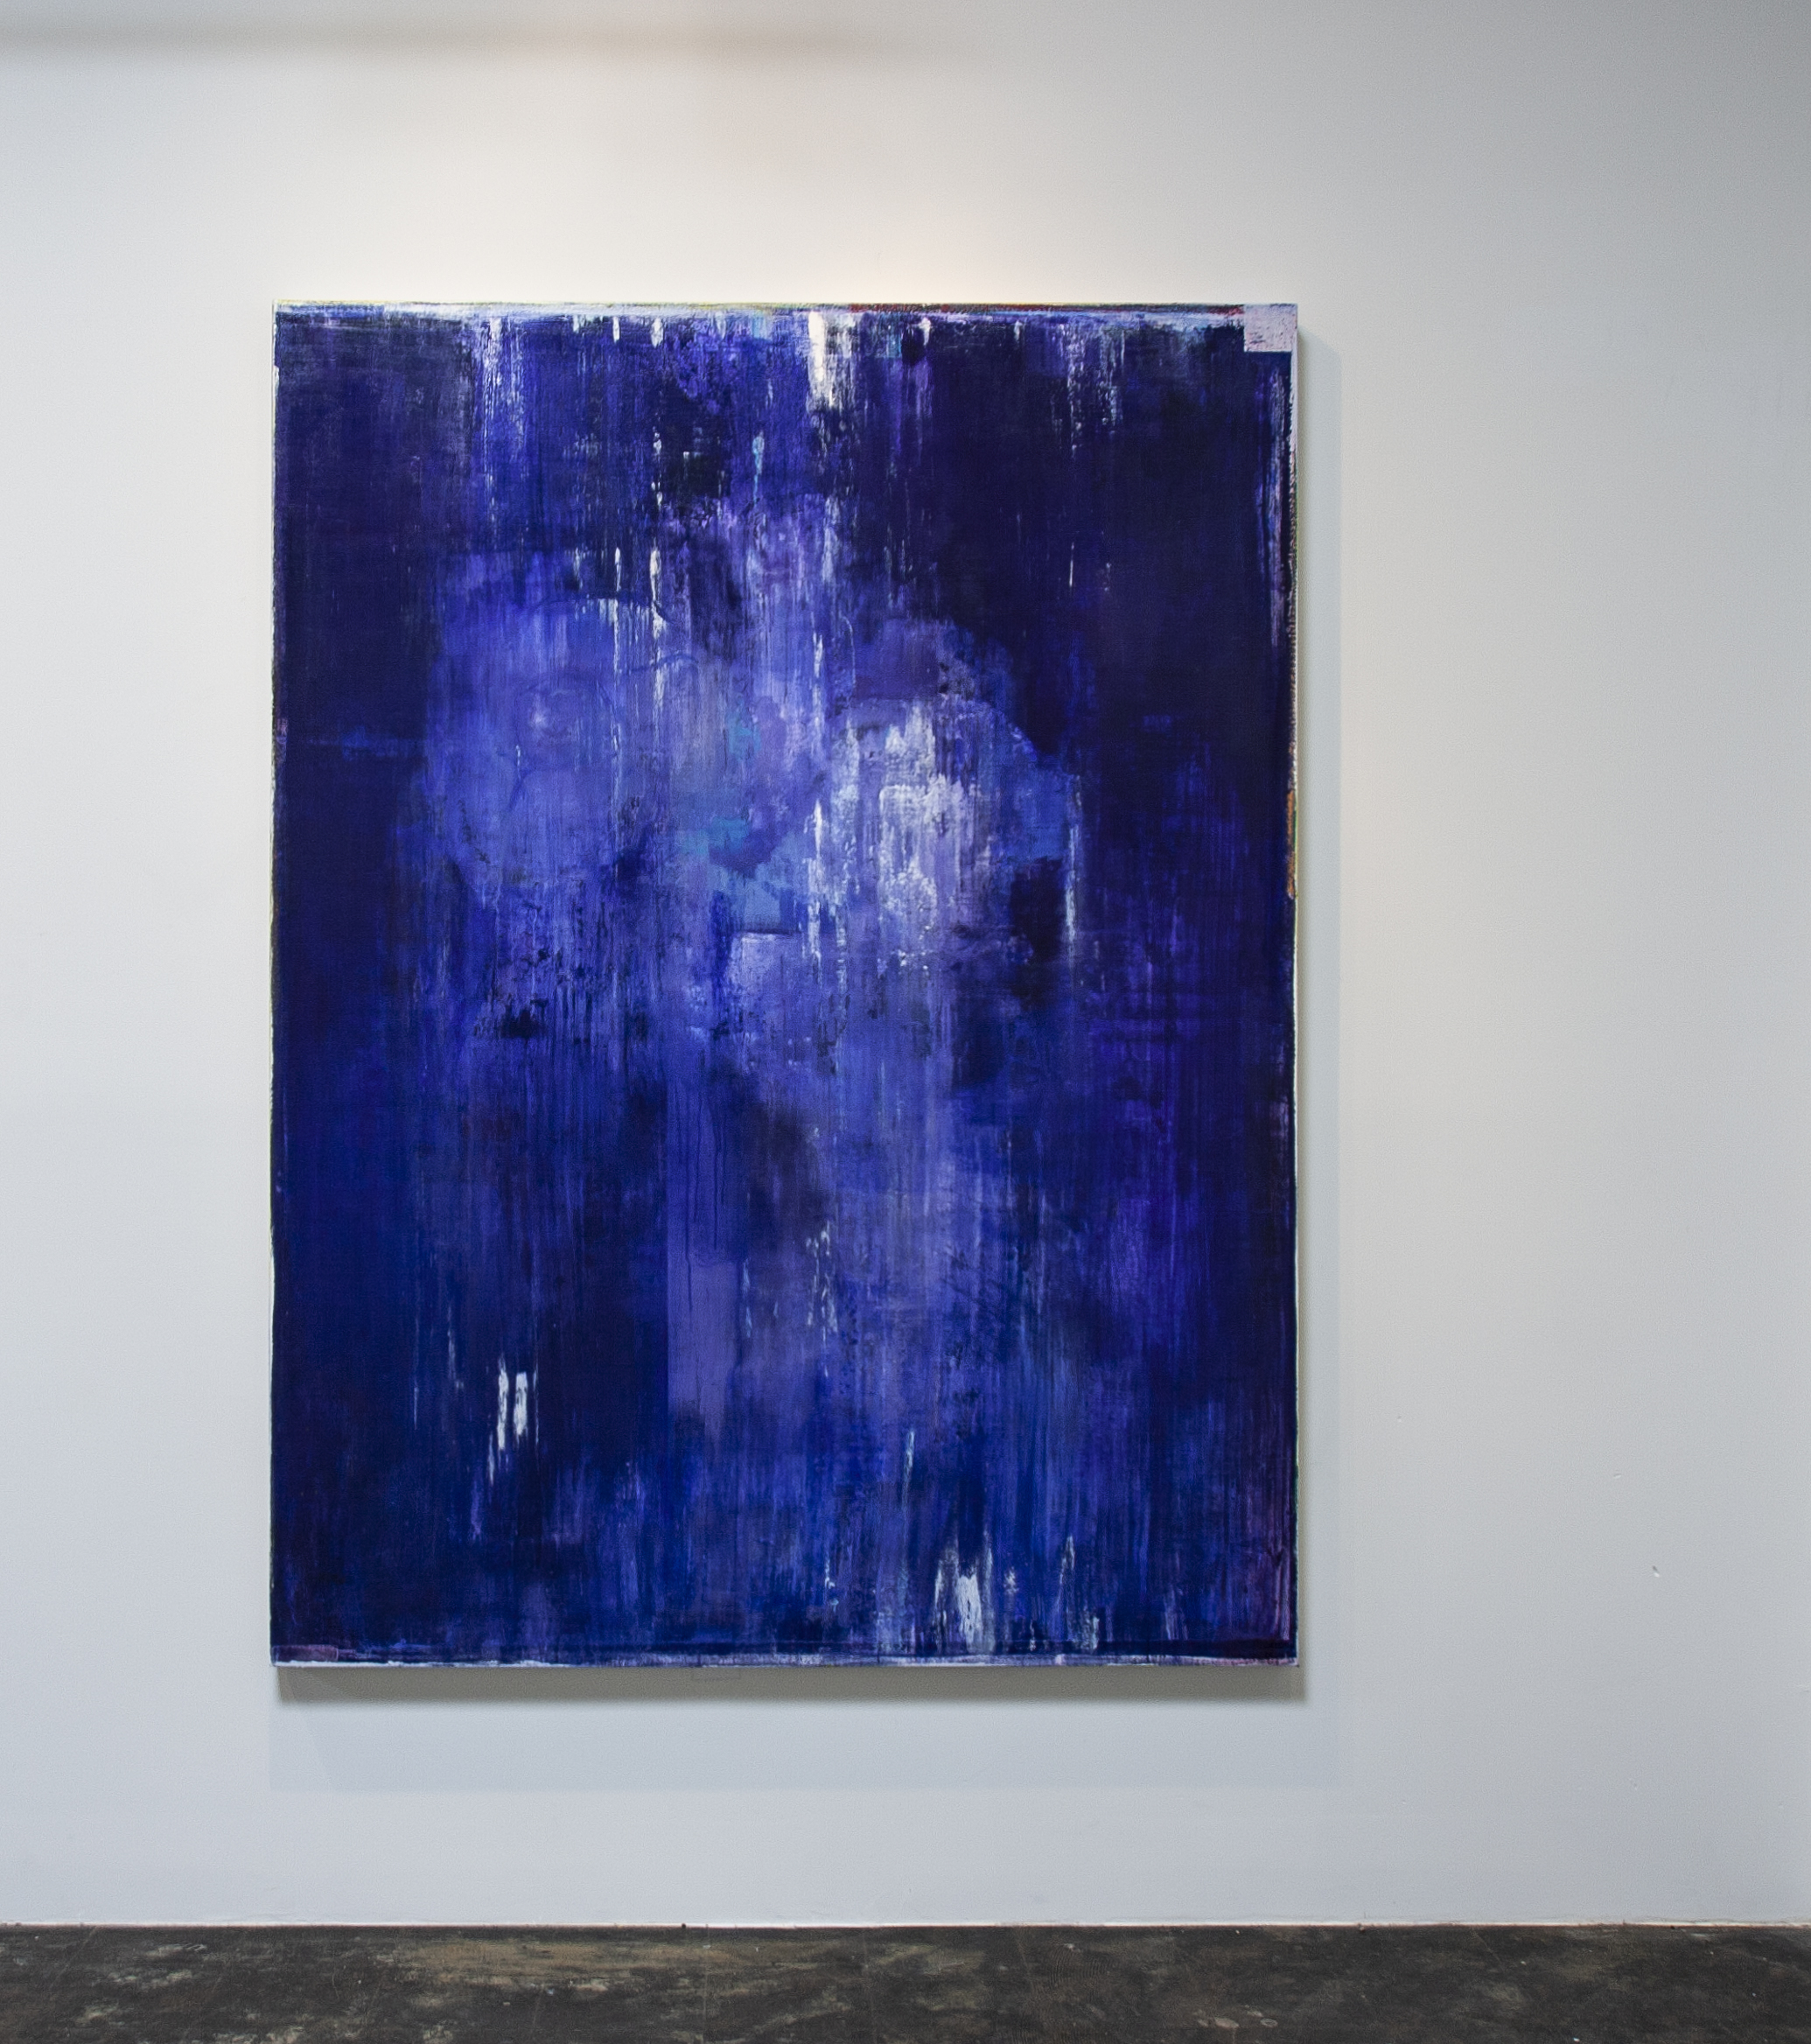 Daniel Brice, Polaroid Painting (Blue/Violet), 2018, acrylic and oil on canvas, 84 x 60 inches